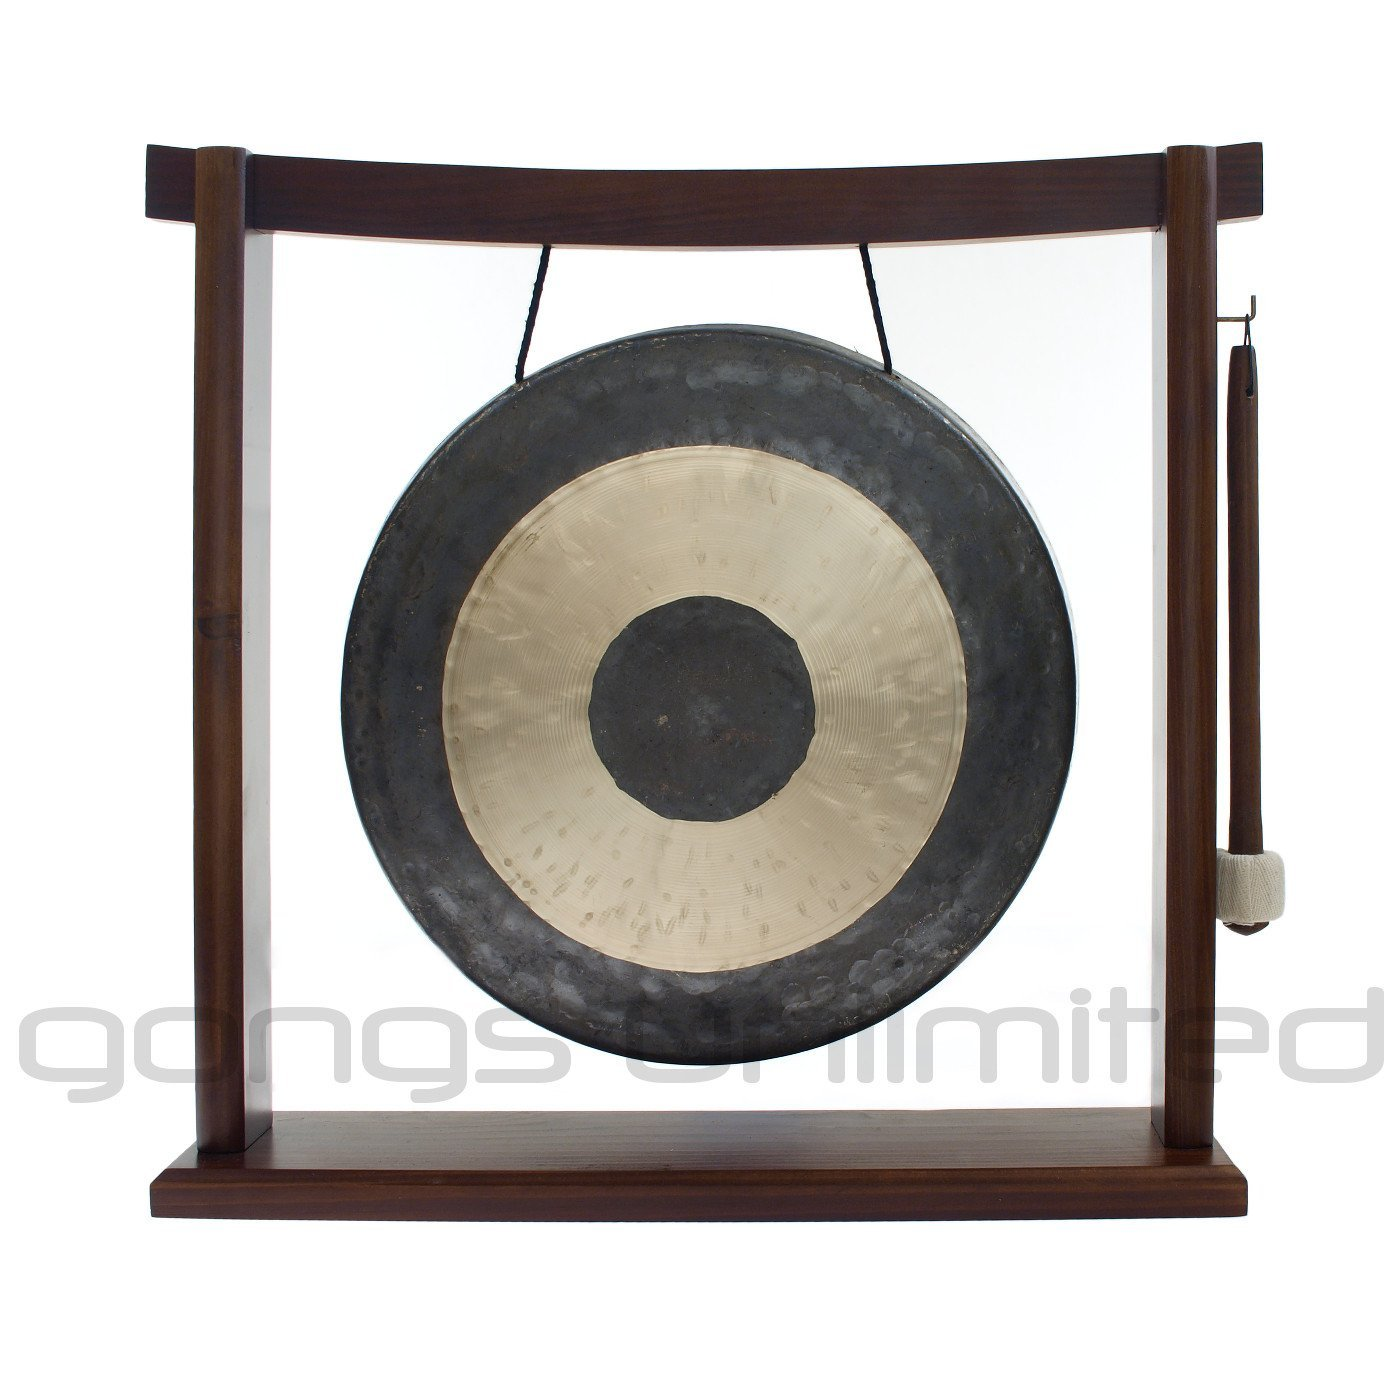 10'' to 12'' Gongs on the Woodsonic Gong Stand